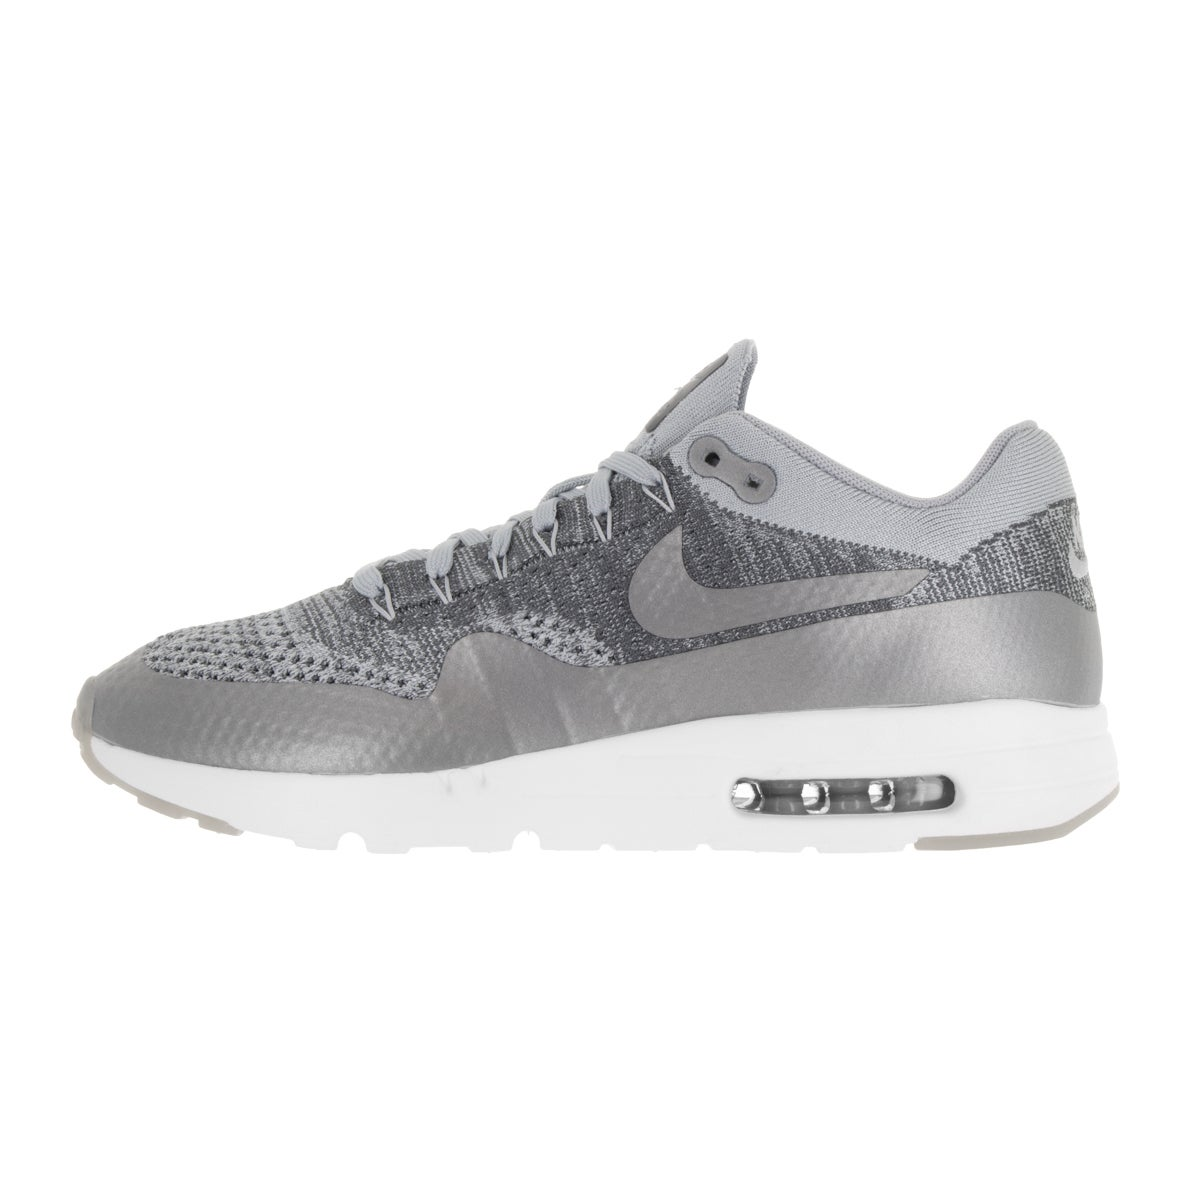 a1b1ea589cf Shop Nike Men s Air Max 1 Ultra Flyknit Wolf Grey Wlf Grey Drk Gry Wht  Running Shoe - Free Shipping Today - Overstock - 13394395